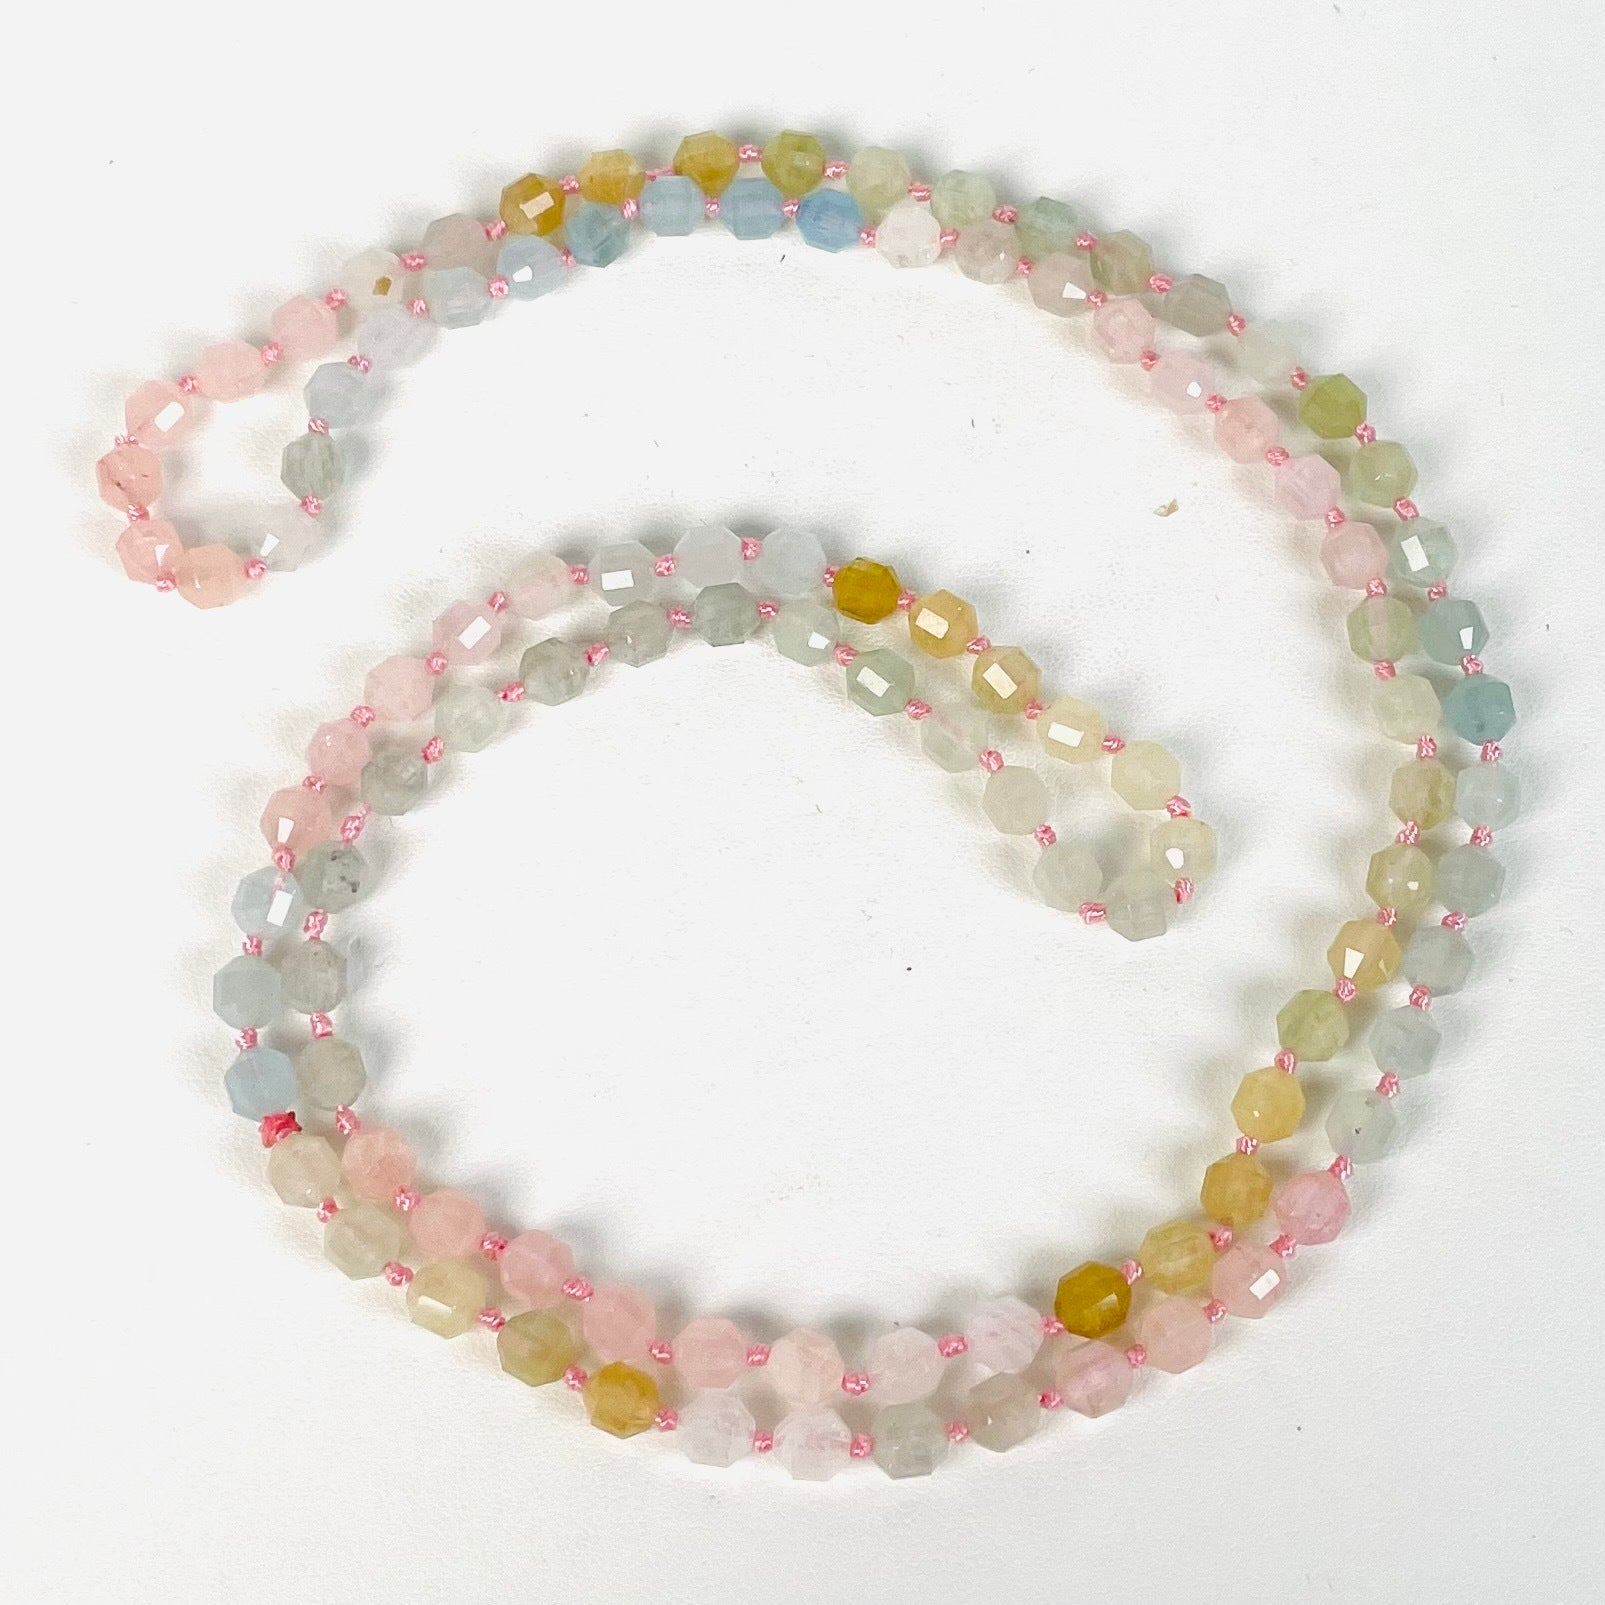 Ravina Ring with diamonds/tanzanite/and Opal - Size 7